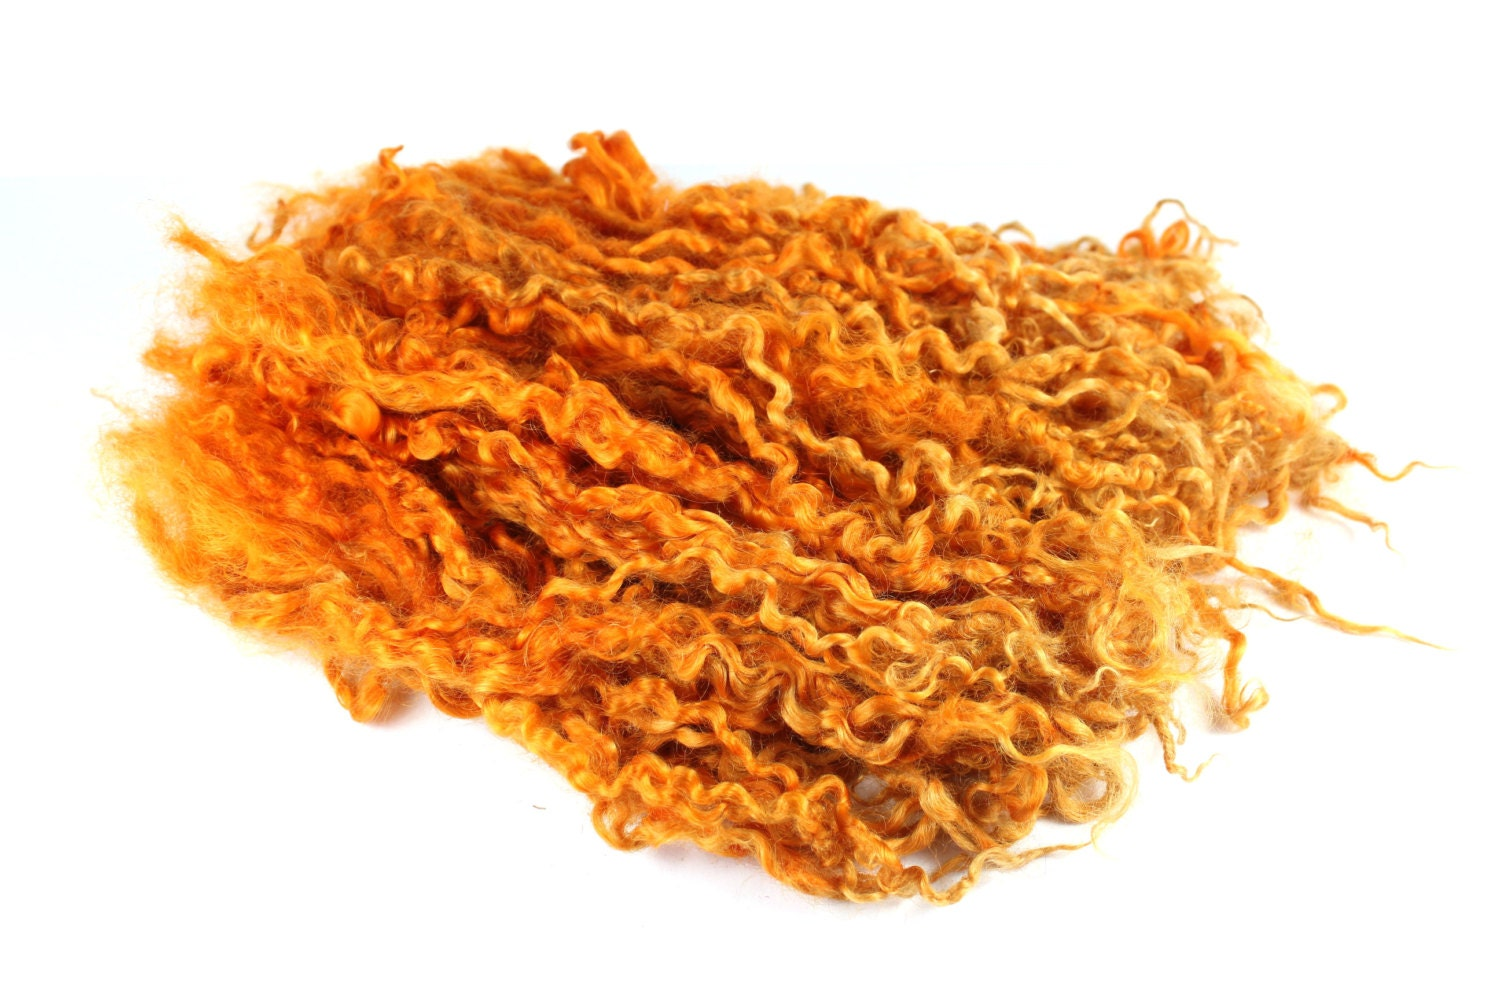 Rust Yellow Orange - Super long Locks curls from Teeswater sheep for Tailspinning, dollmaking, doll hair or felting - single color - SpinningMermaid